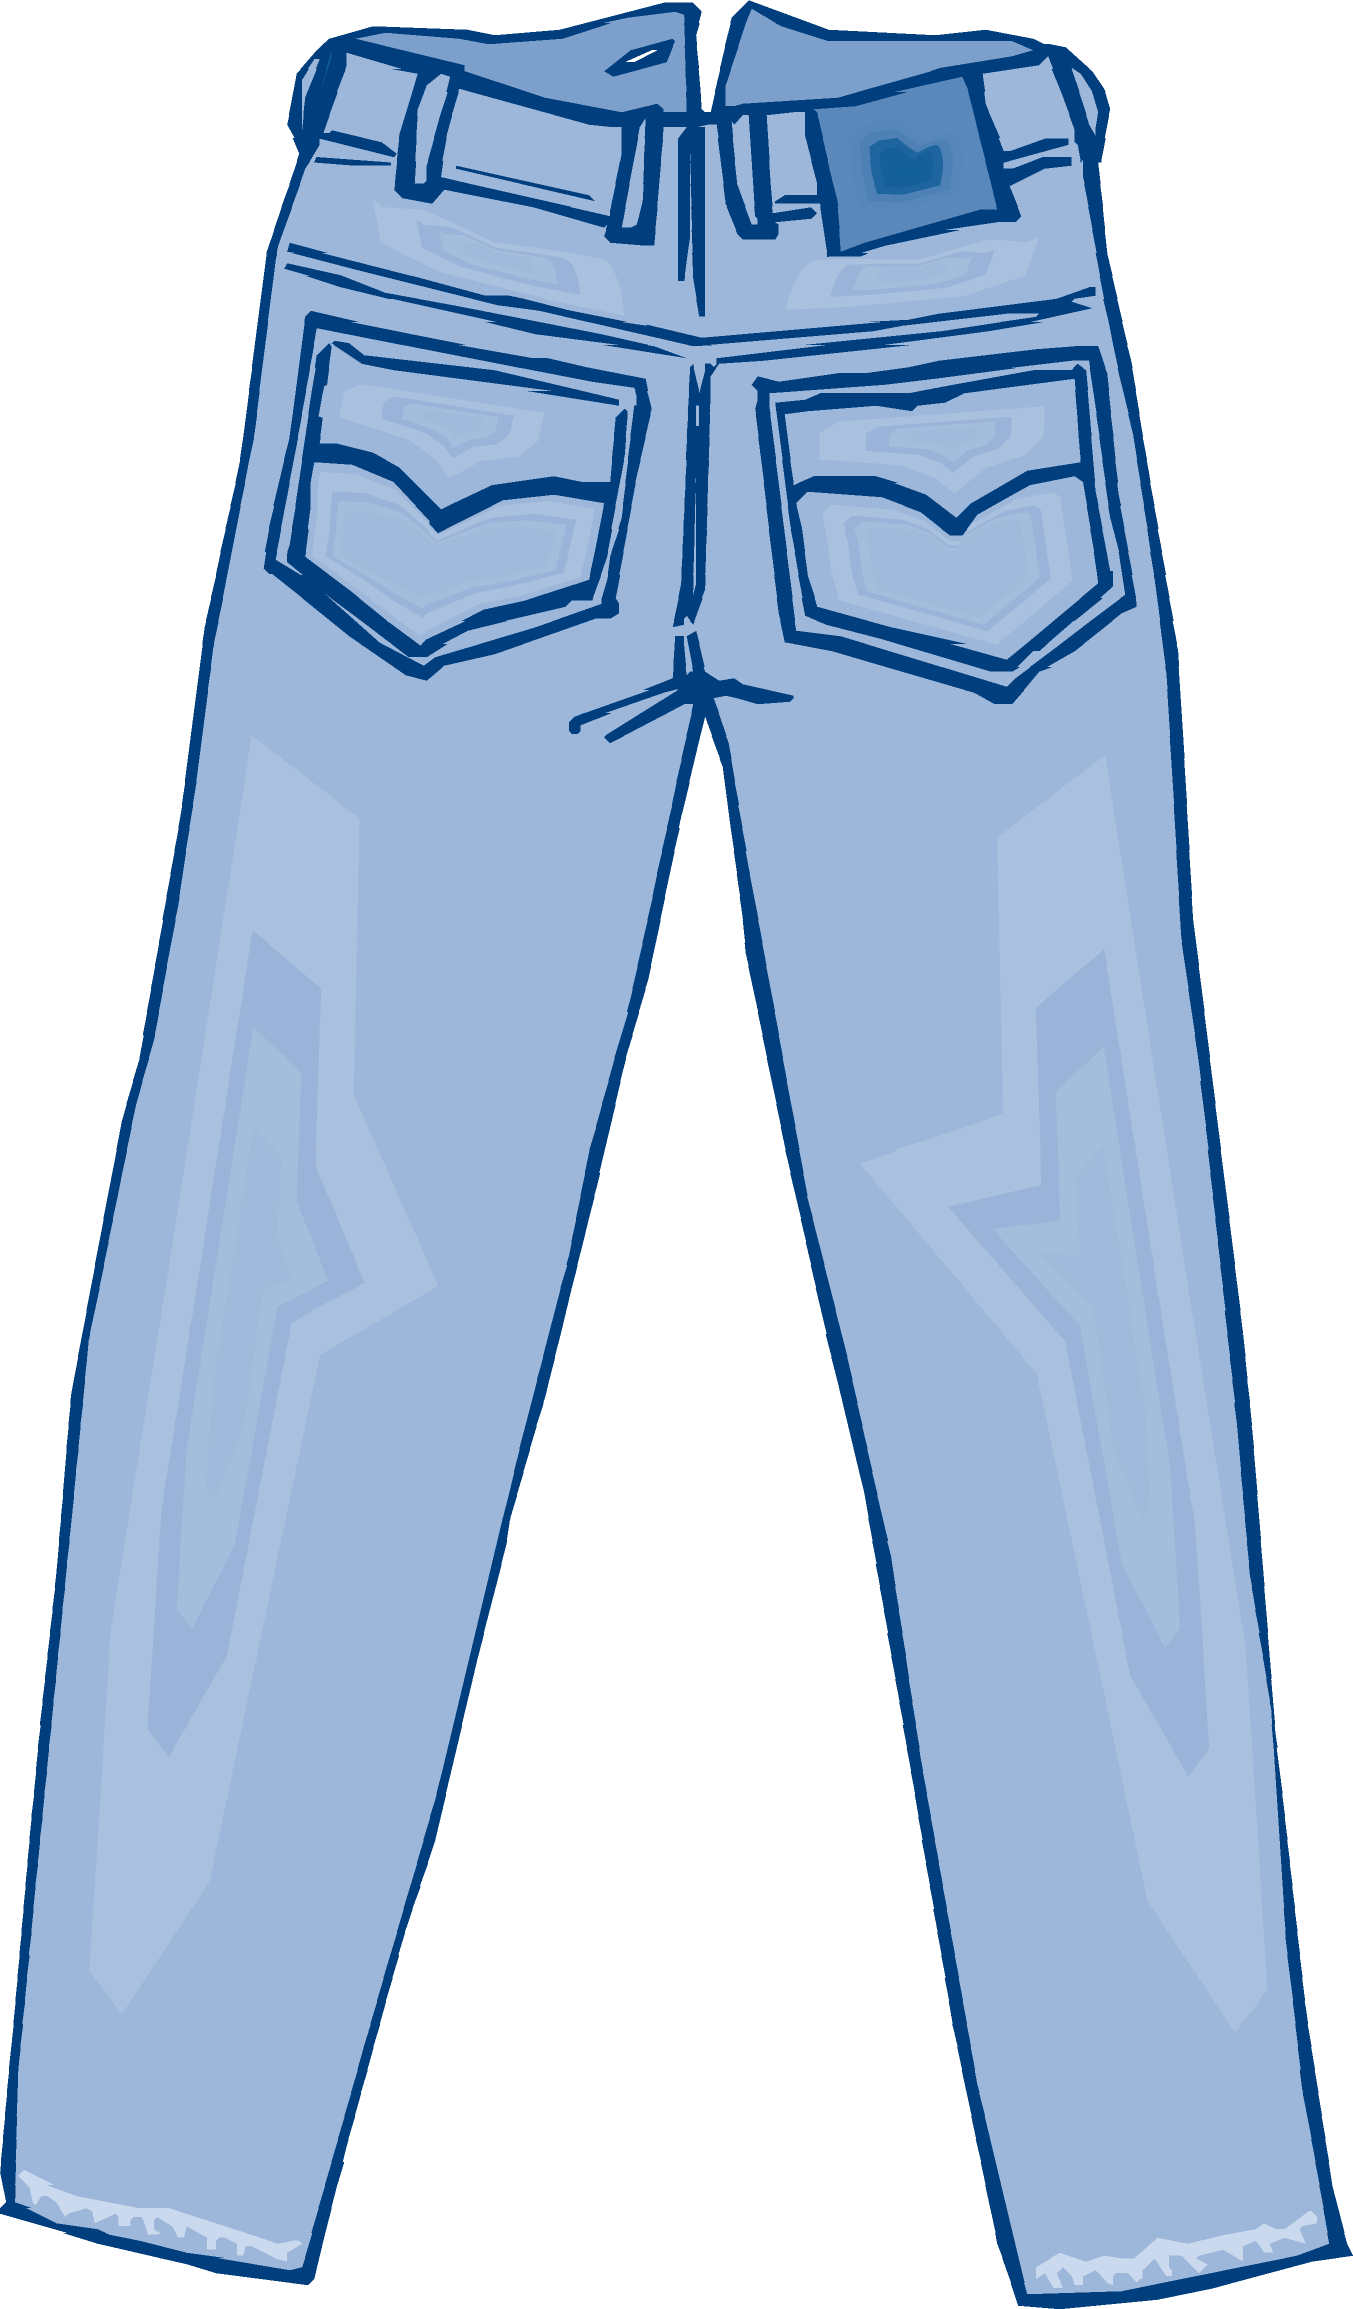 Image Of Jeans - ClipArt Best